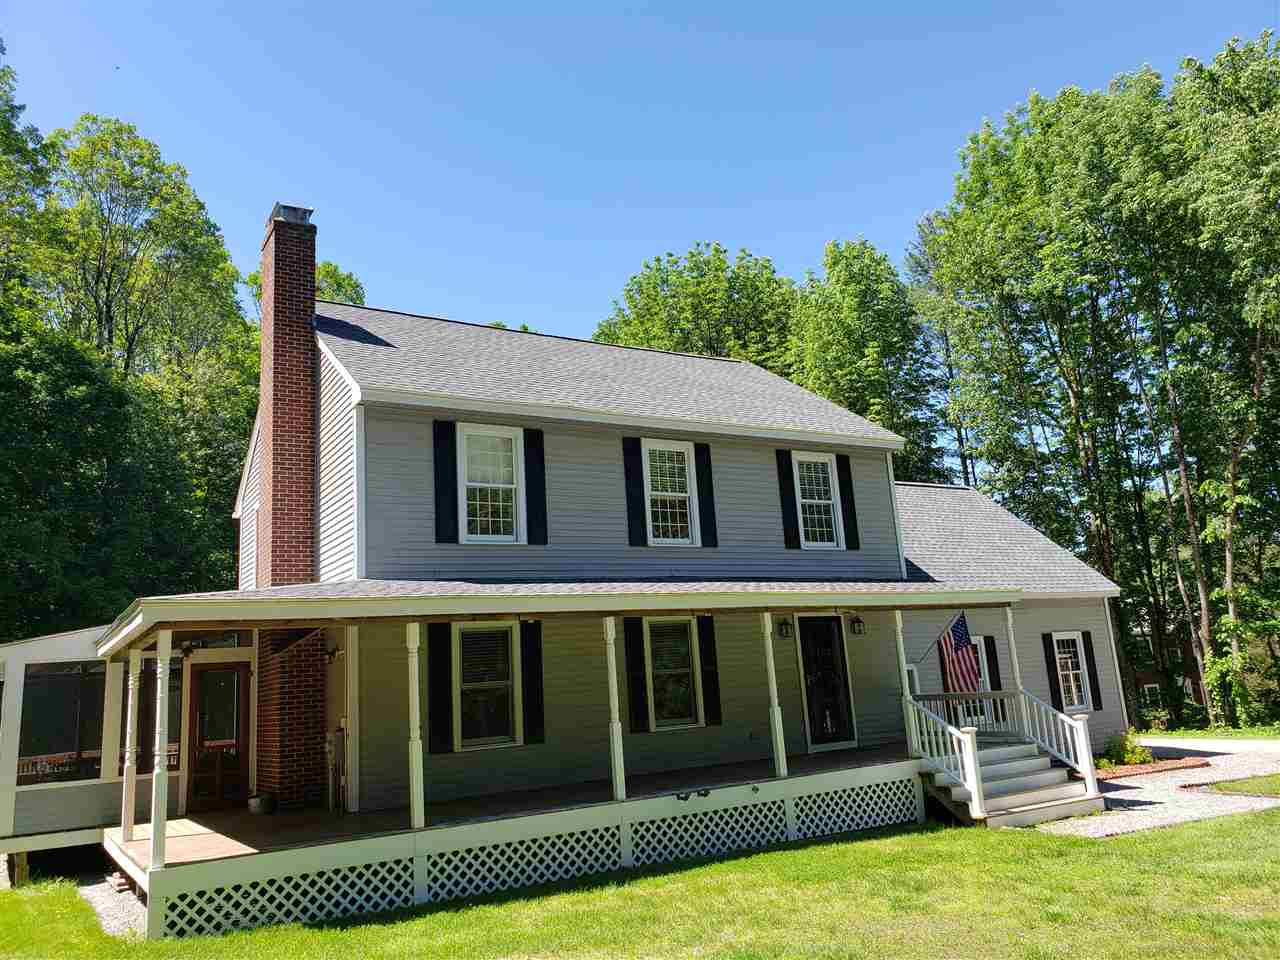 Photo of 49 Turnberry Lane Hopkinton NH 03229